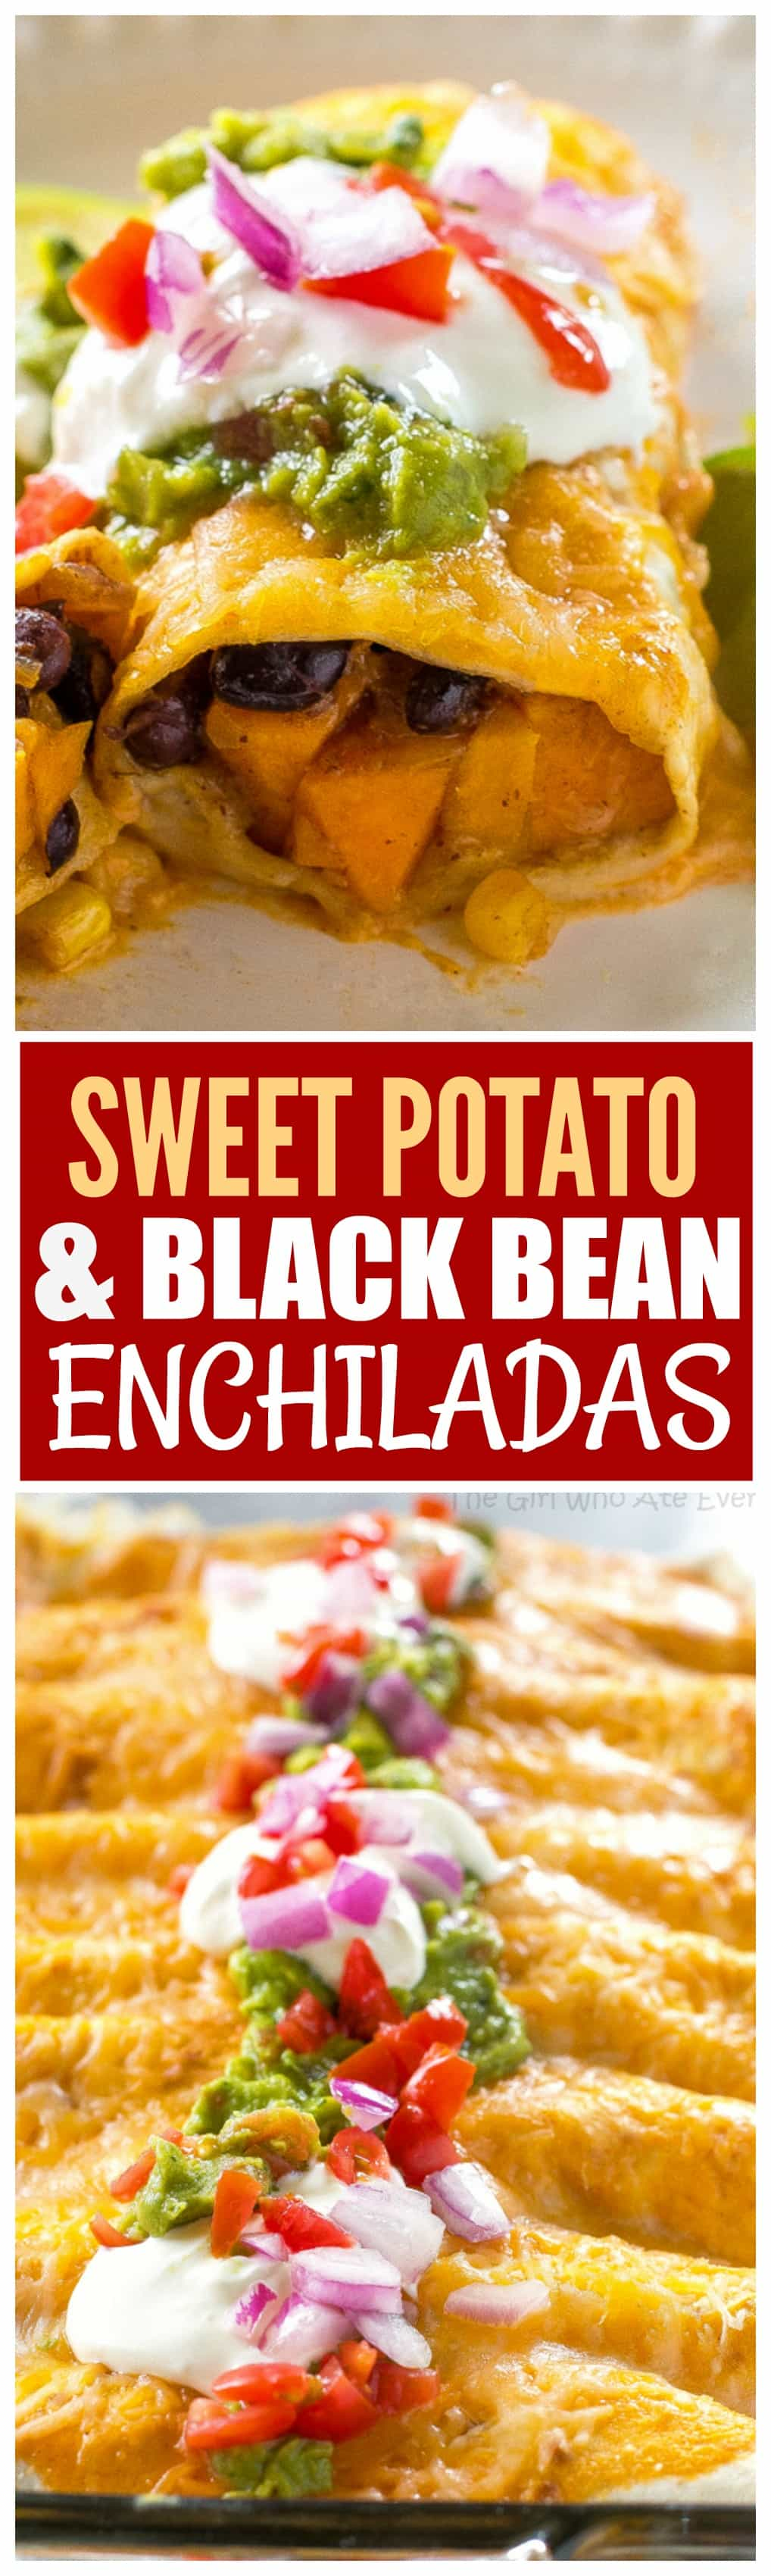 Sweet Potato and Black Bean Enchiladas - a vegetarian Mexican dinner that has the perfect amount of spice and flavor. This is a great freezer meal! #sweet #potato #black #bean #enchiladas #mexican #dinner